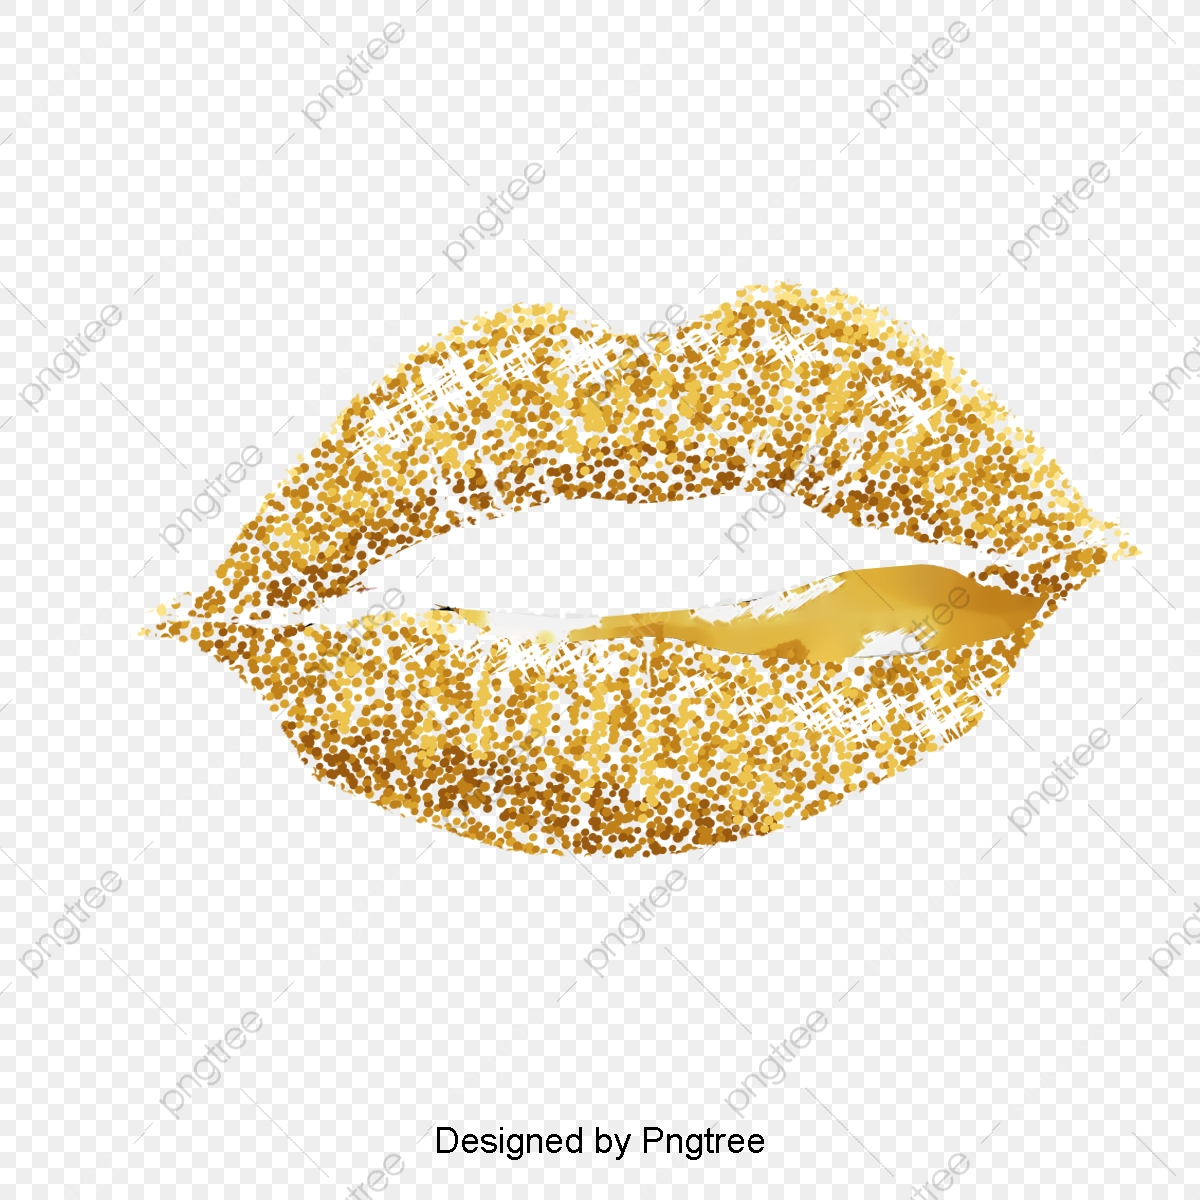 Gold lips clipart clip art black and white stock Gold Lips Vector Image, Golden, Lips, Vector Image PNG Transparent ... clip art black and white stock